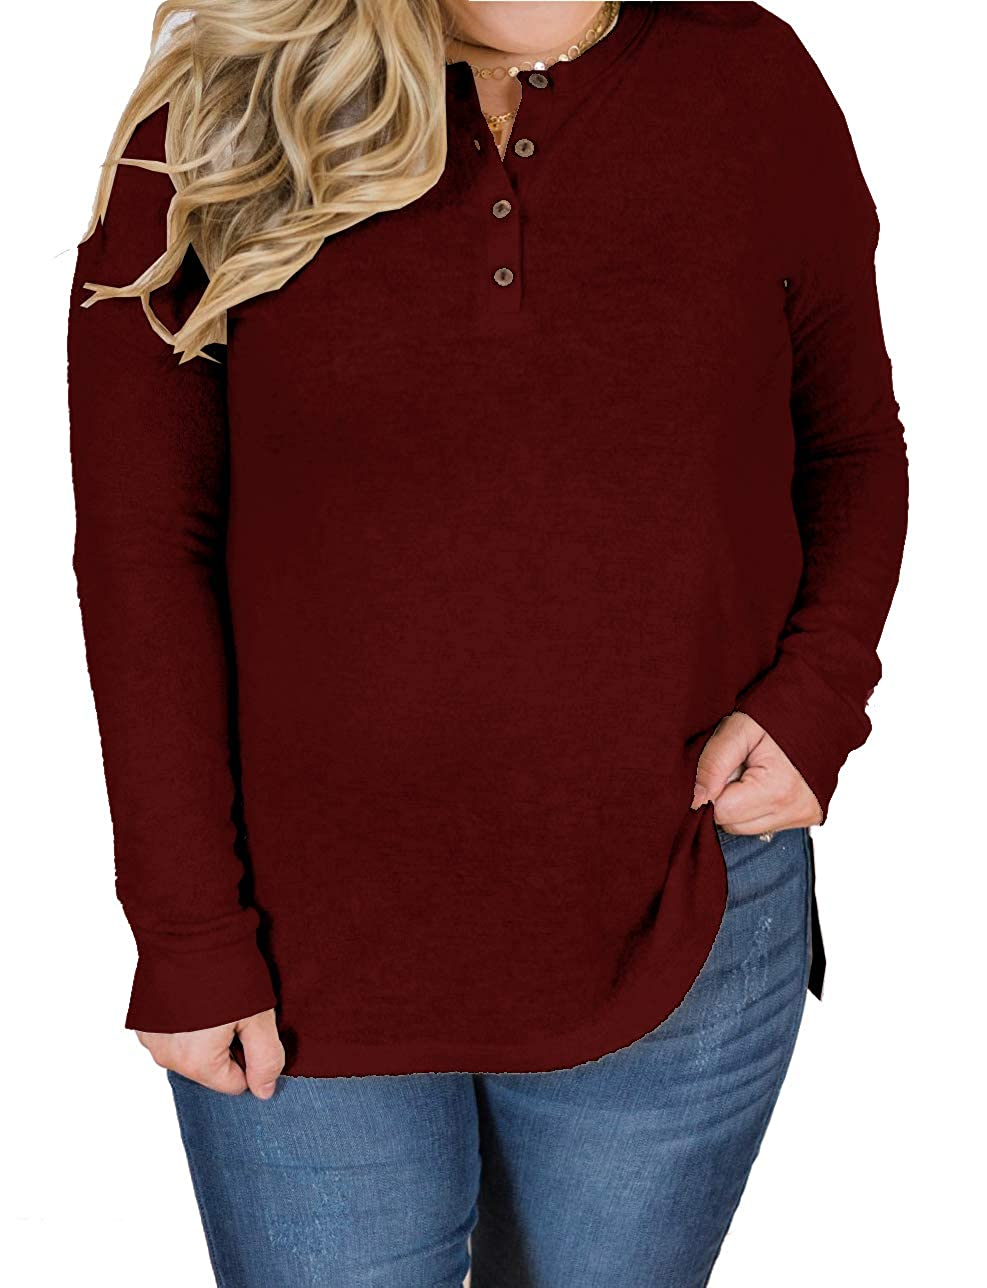 YSkkt Womens Henley Tops Plus Size Sweatshirts Long Sleeve Button Ribbed Knit Casual Fall Shirts